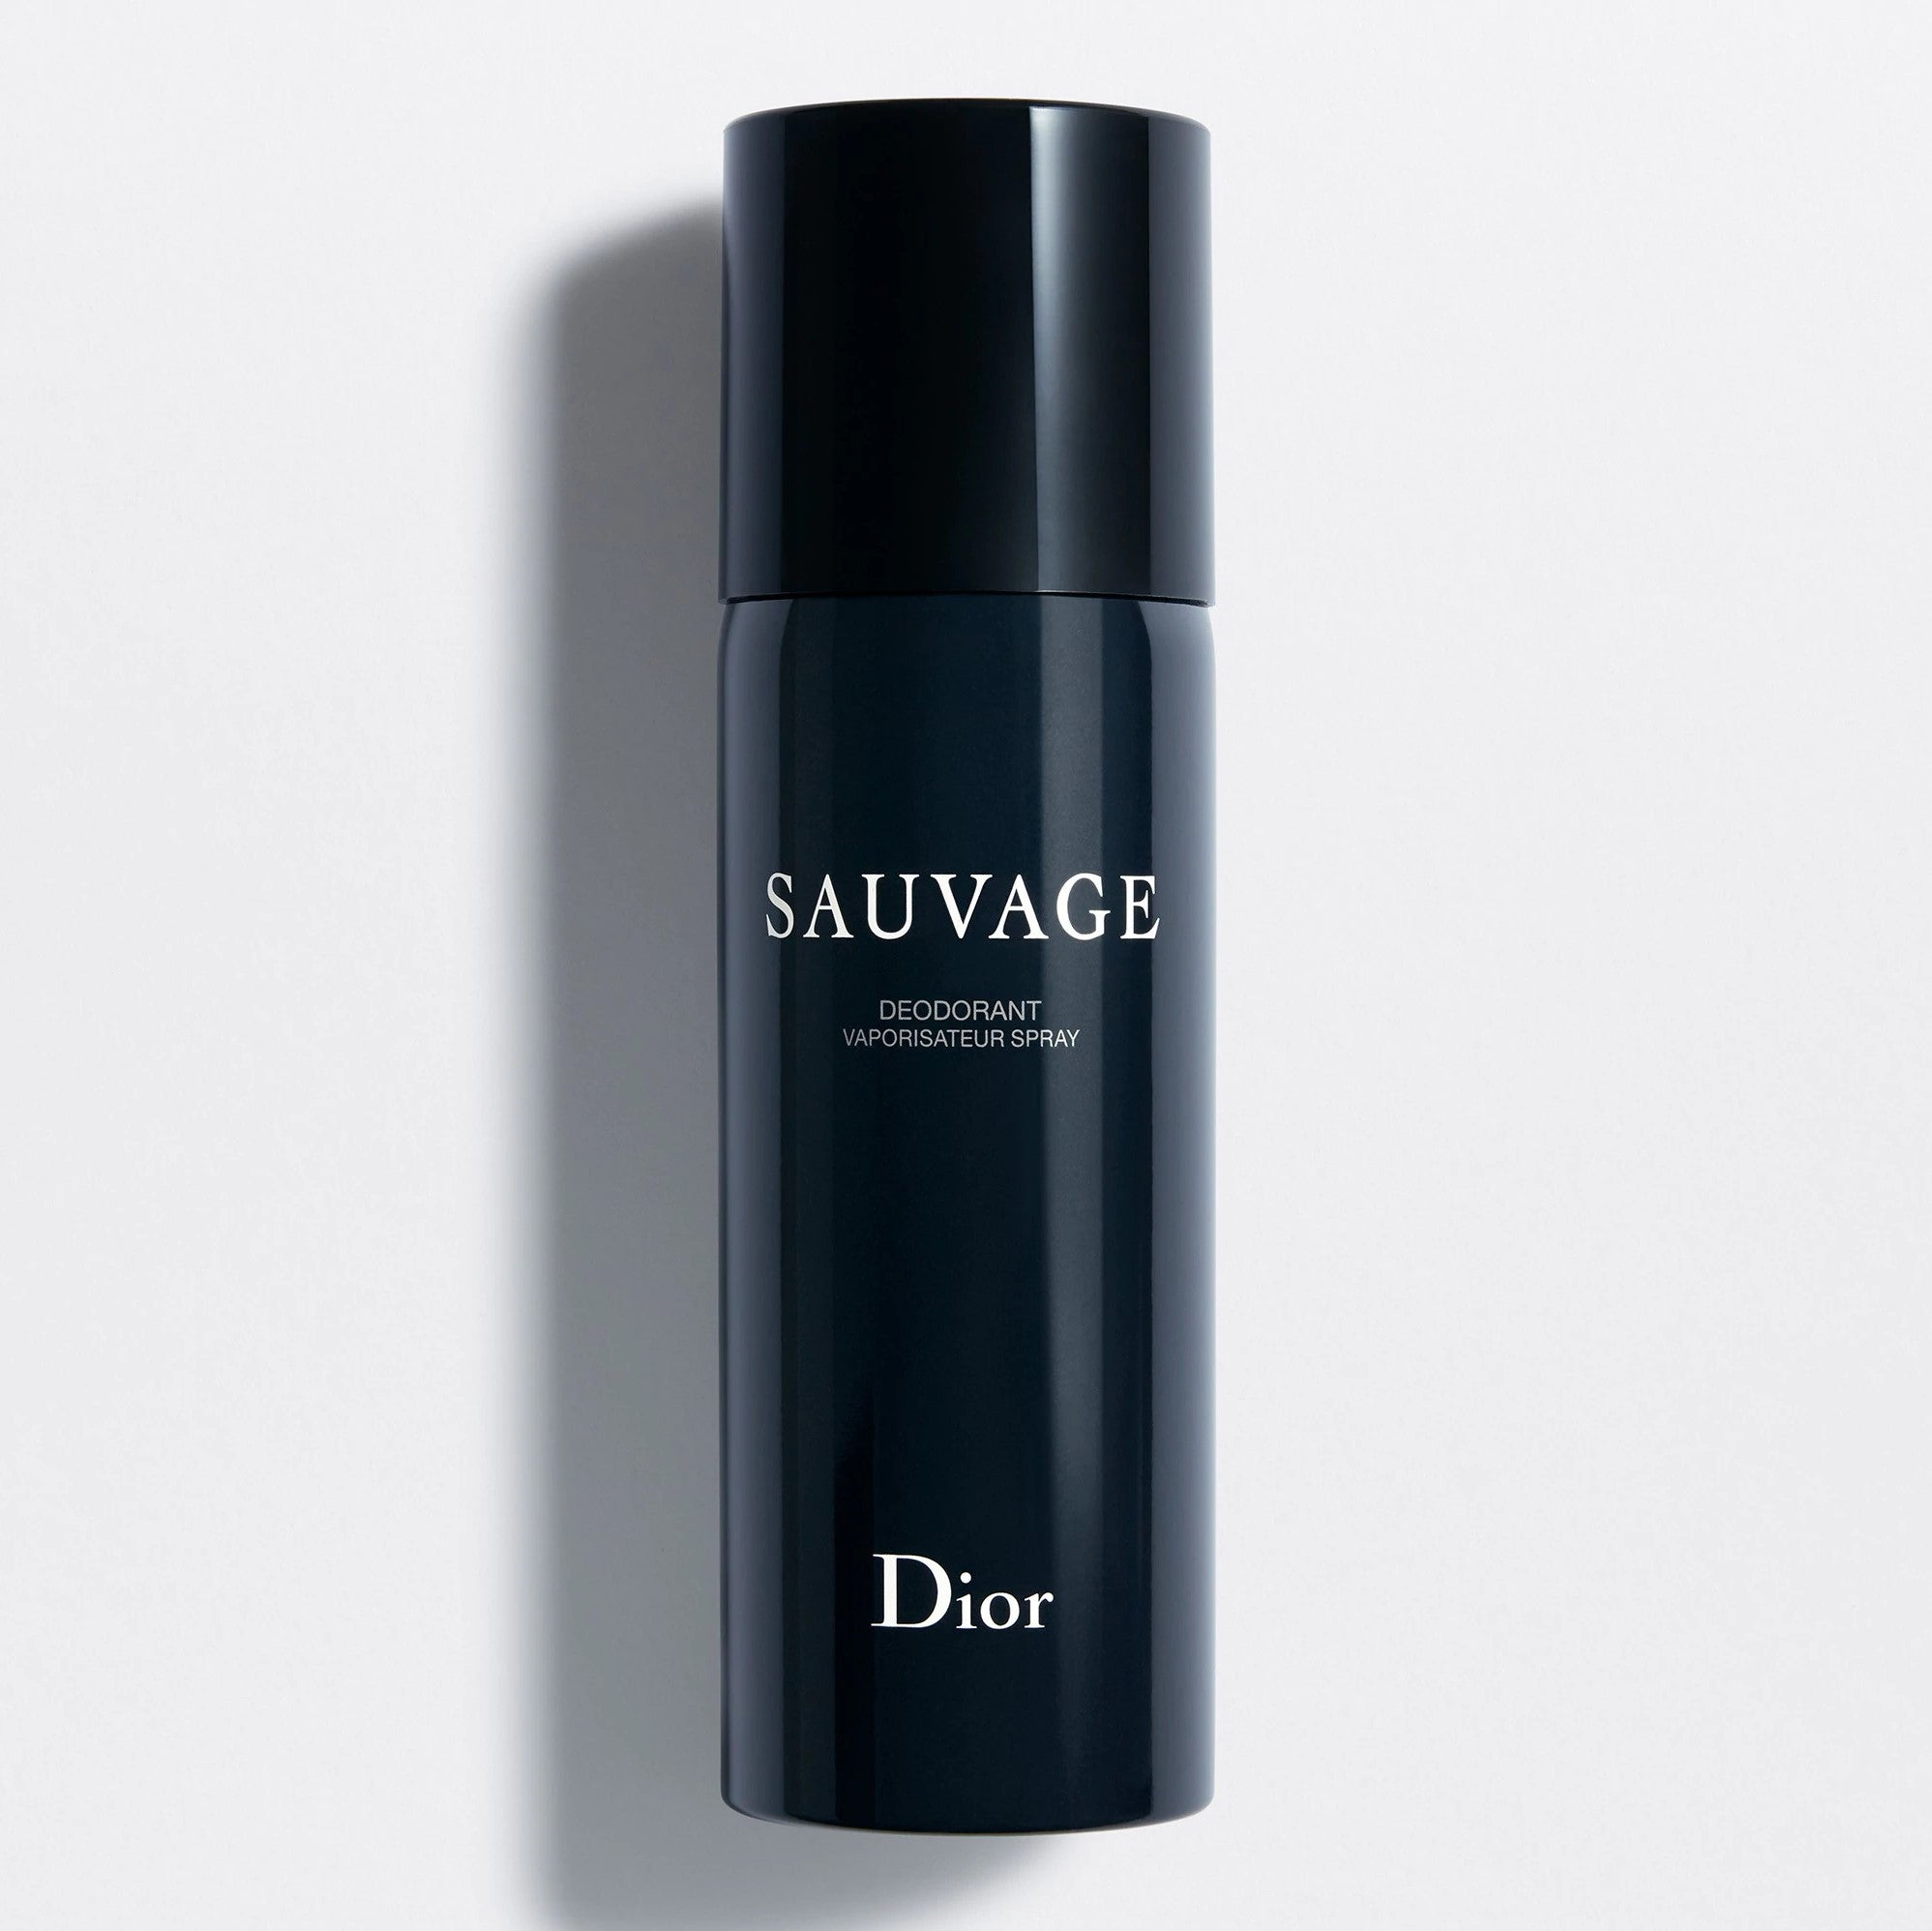 Sauvage | Spray deodorant